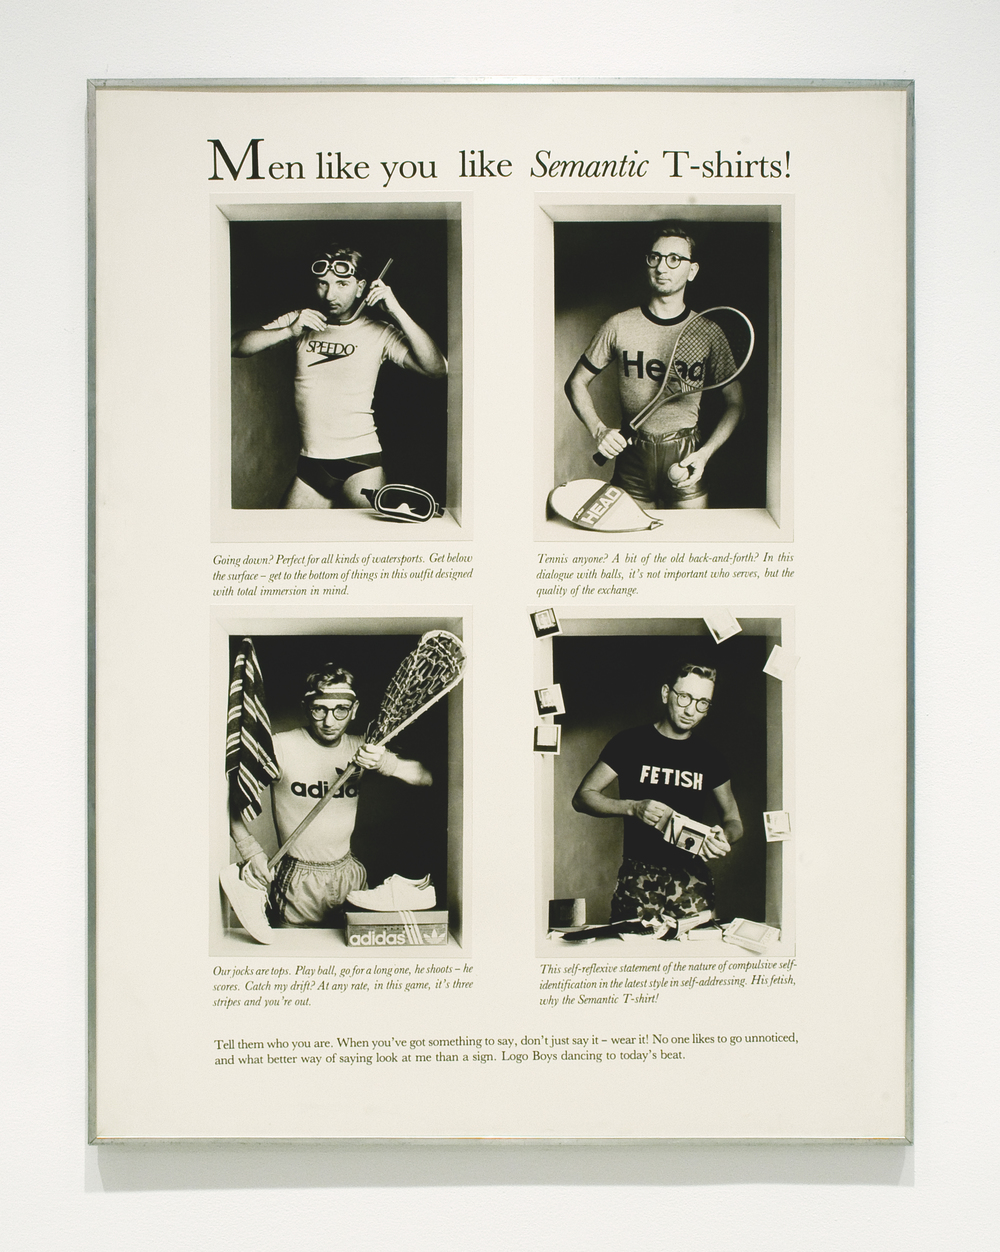 David Buchan, Modern Fashions Suite: Men Like You Like Semantic T-Shirts, 1977. Collection University of Lethbridge Art Gallery.